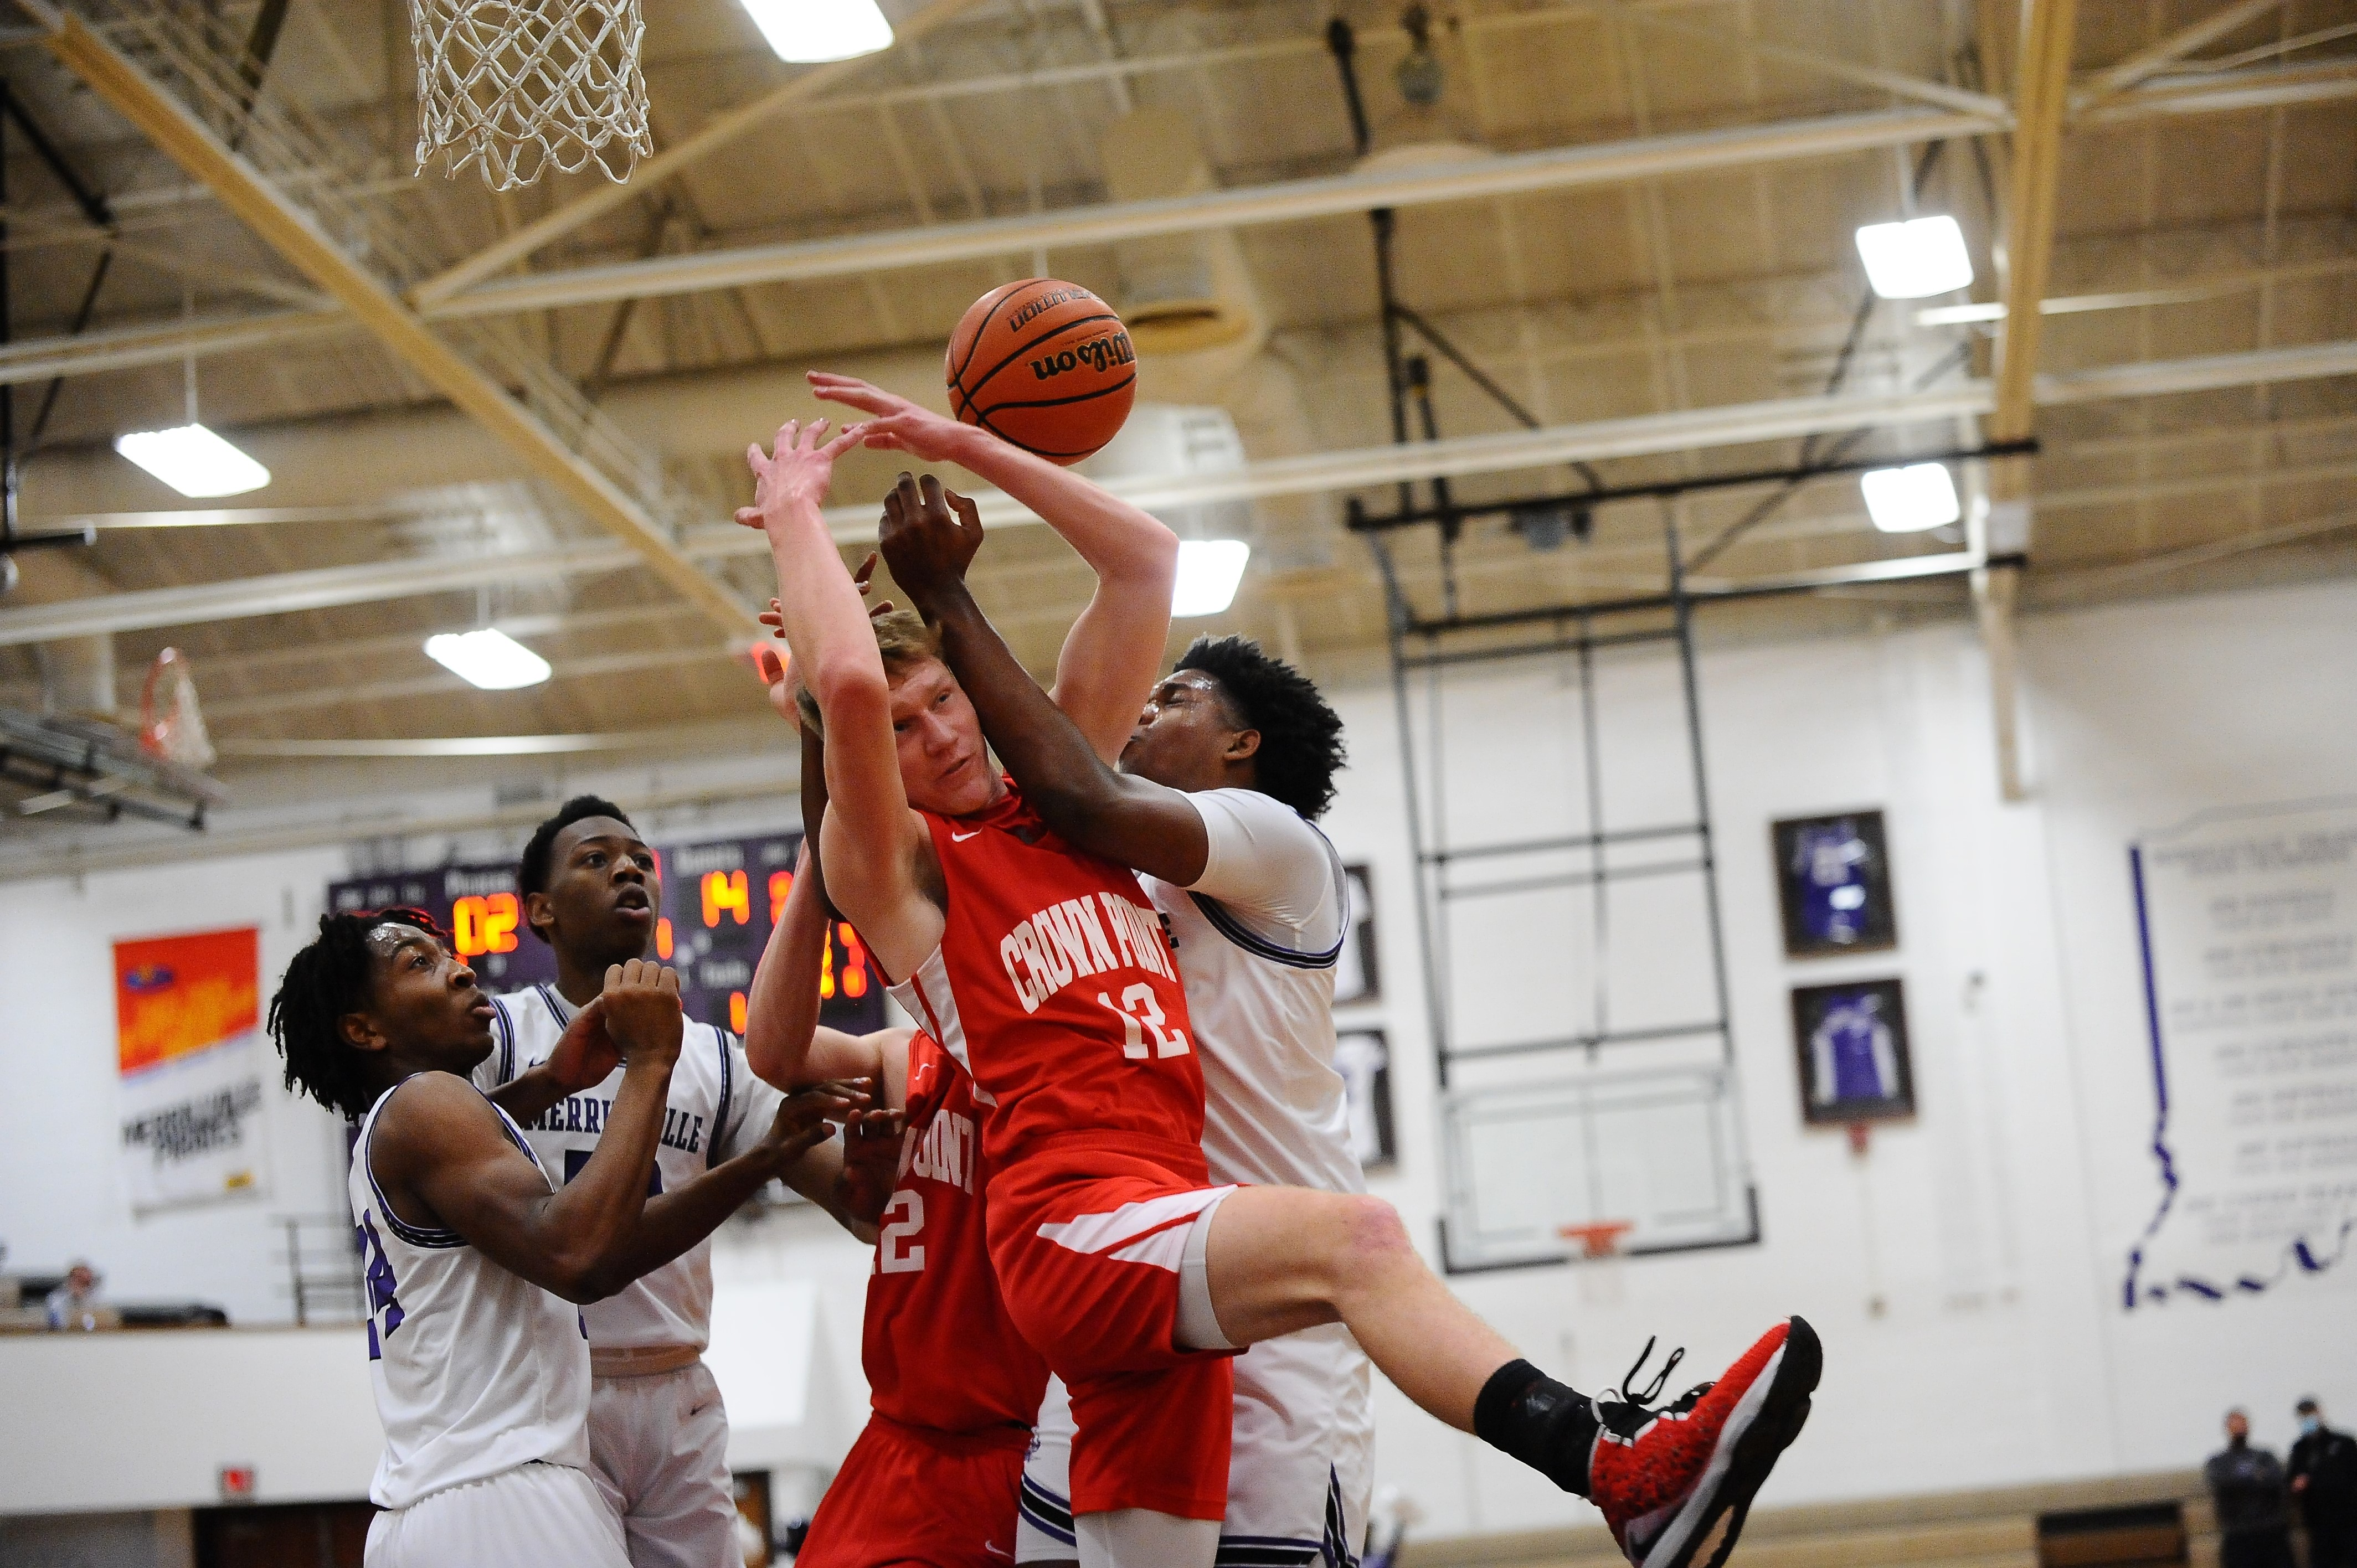 Crown Point Bulldogs take down Merrillville Pirates 67-53 In conference play